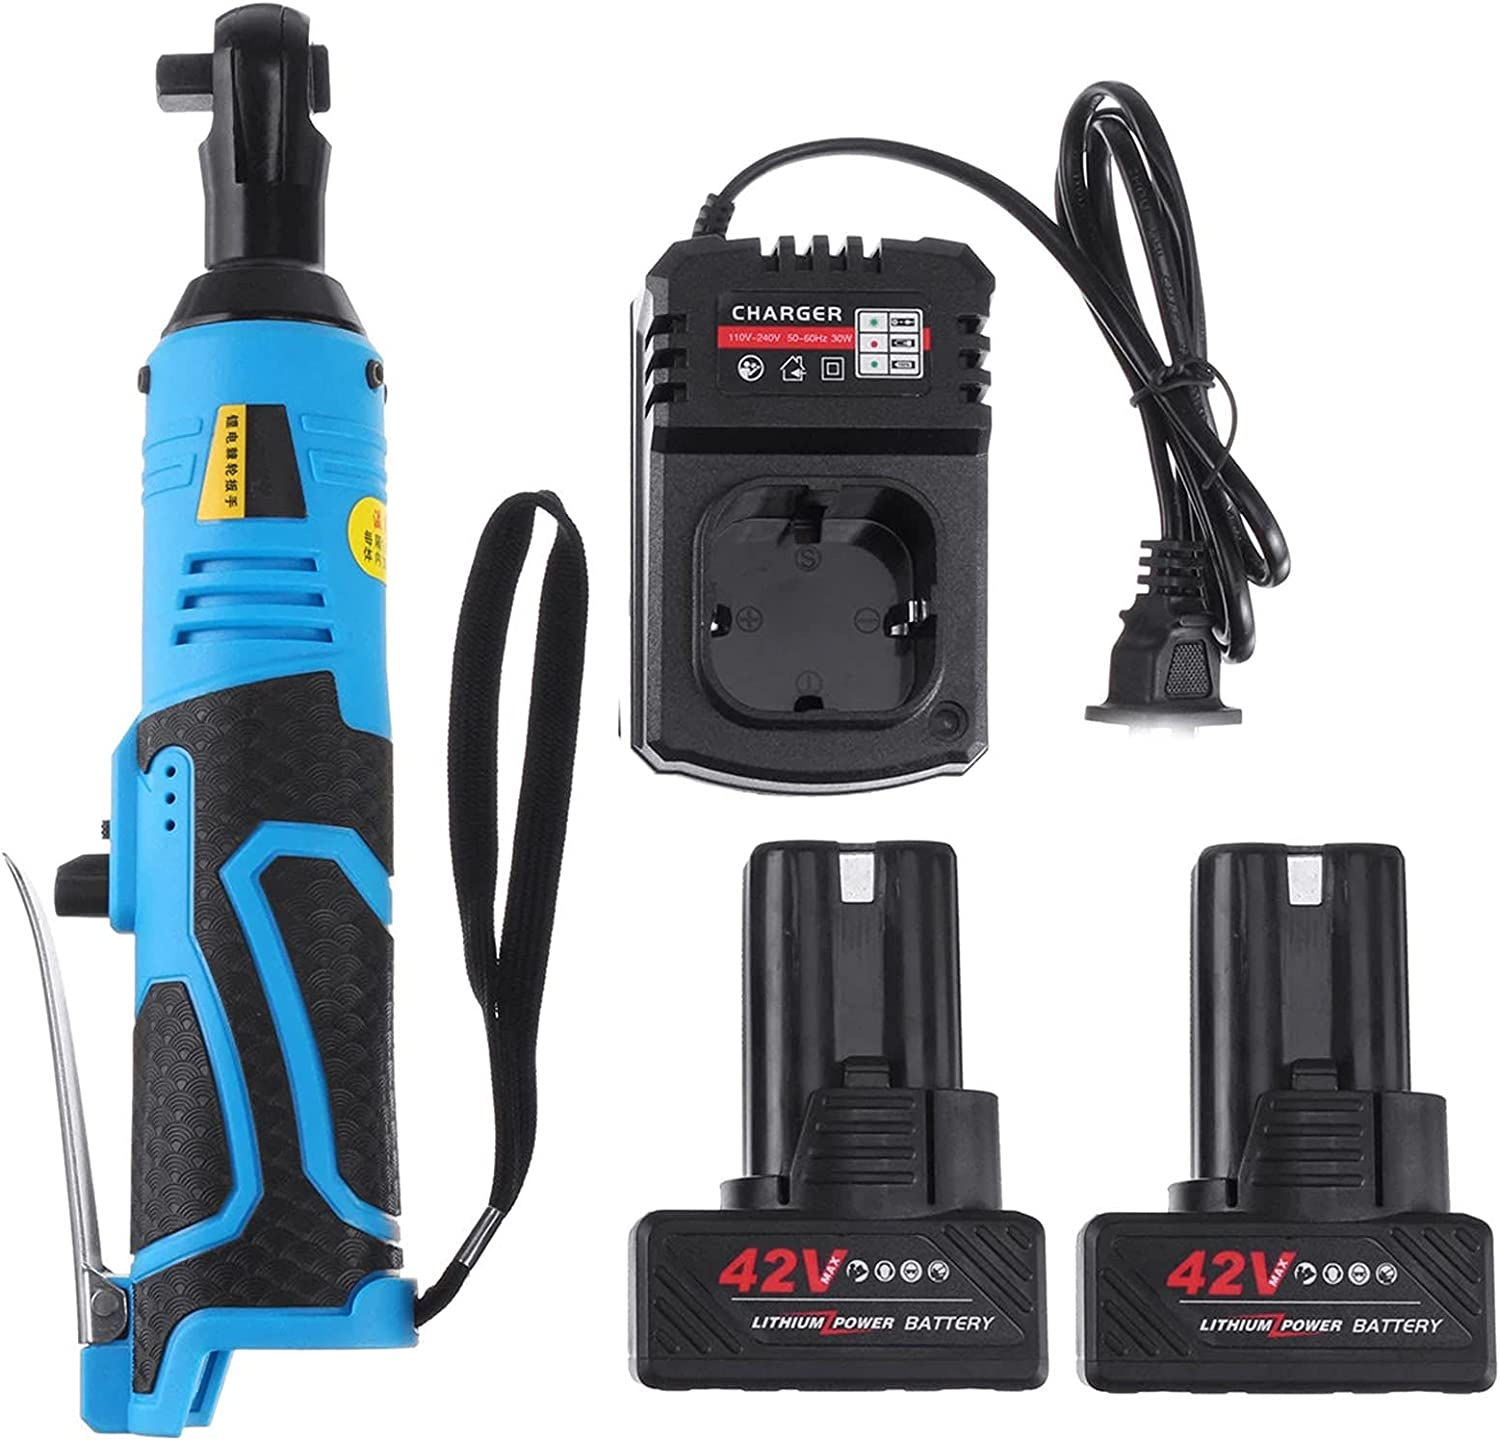 Ratchet Wrench Soldering Sales Electric 3 Cordless 8